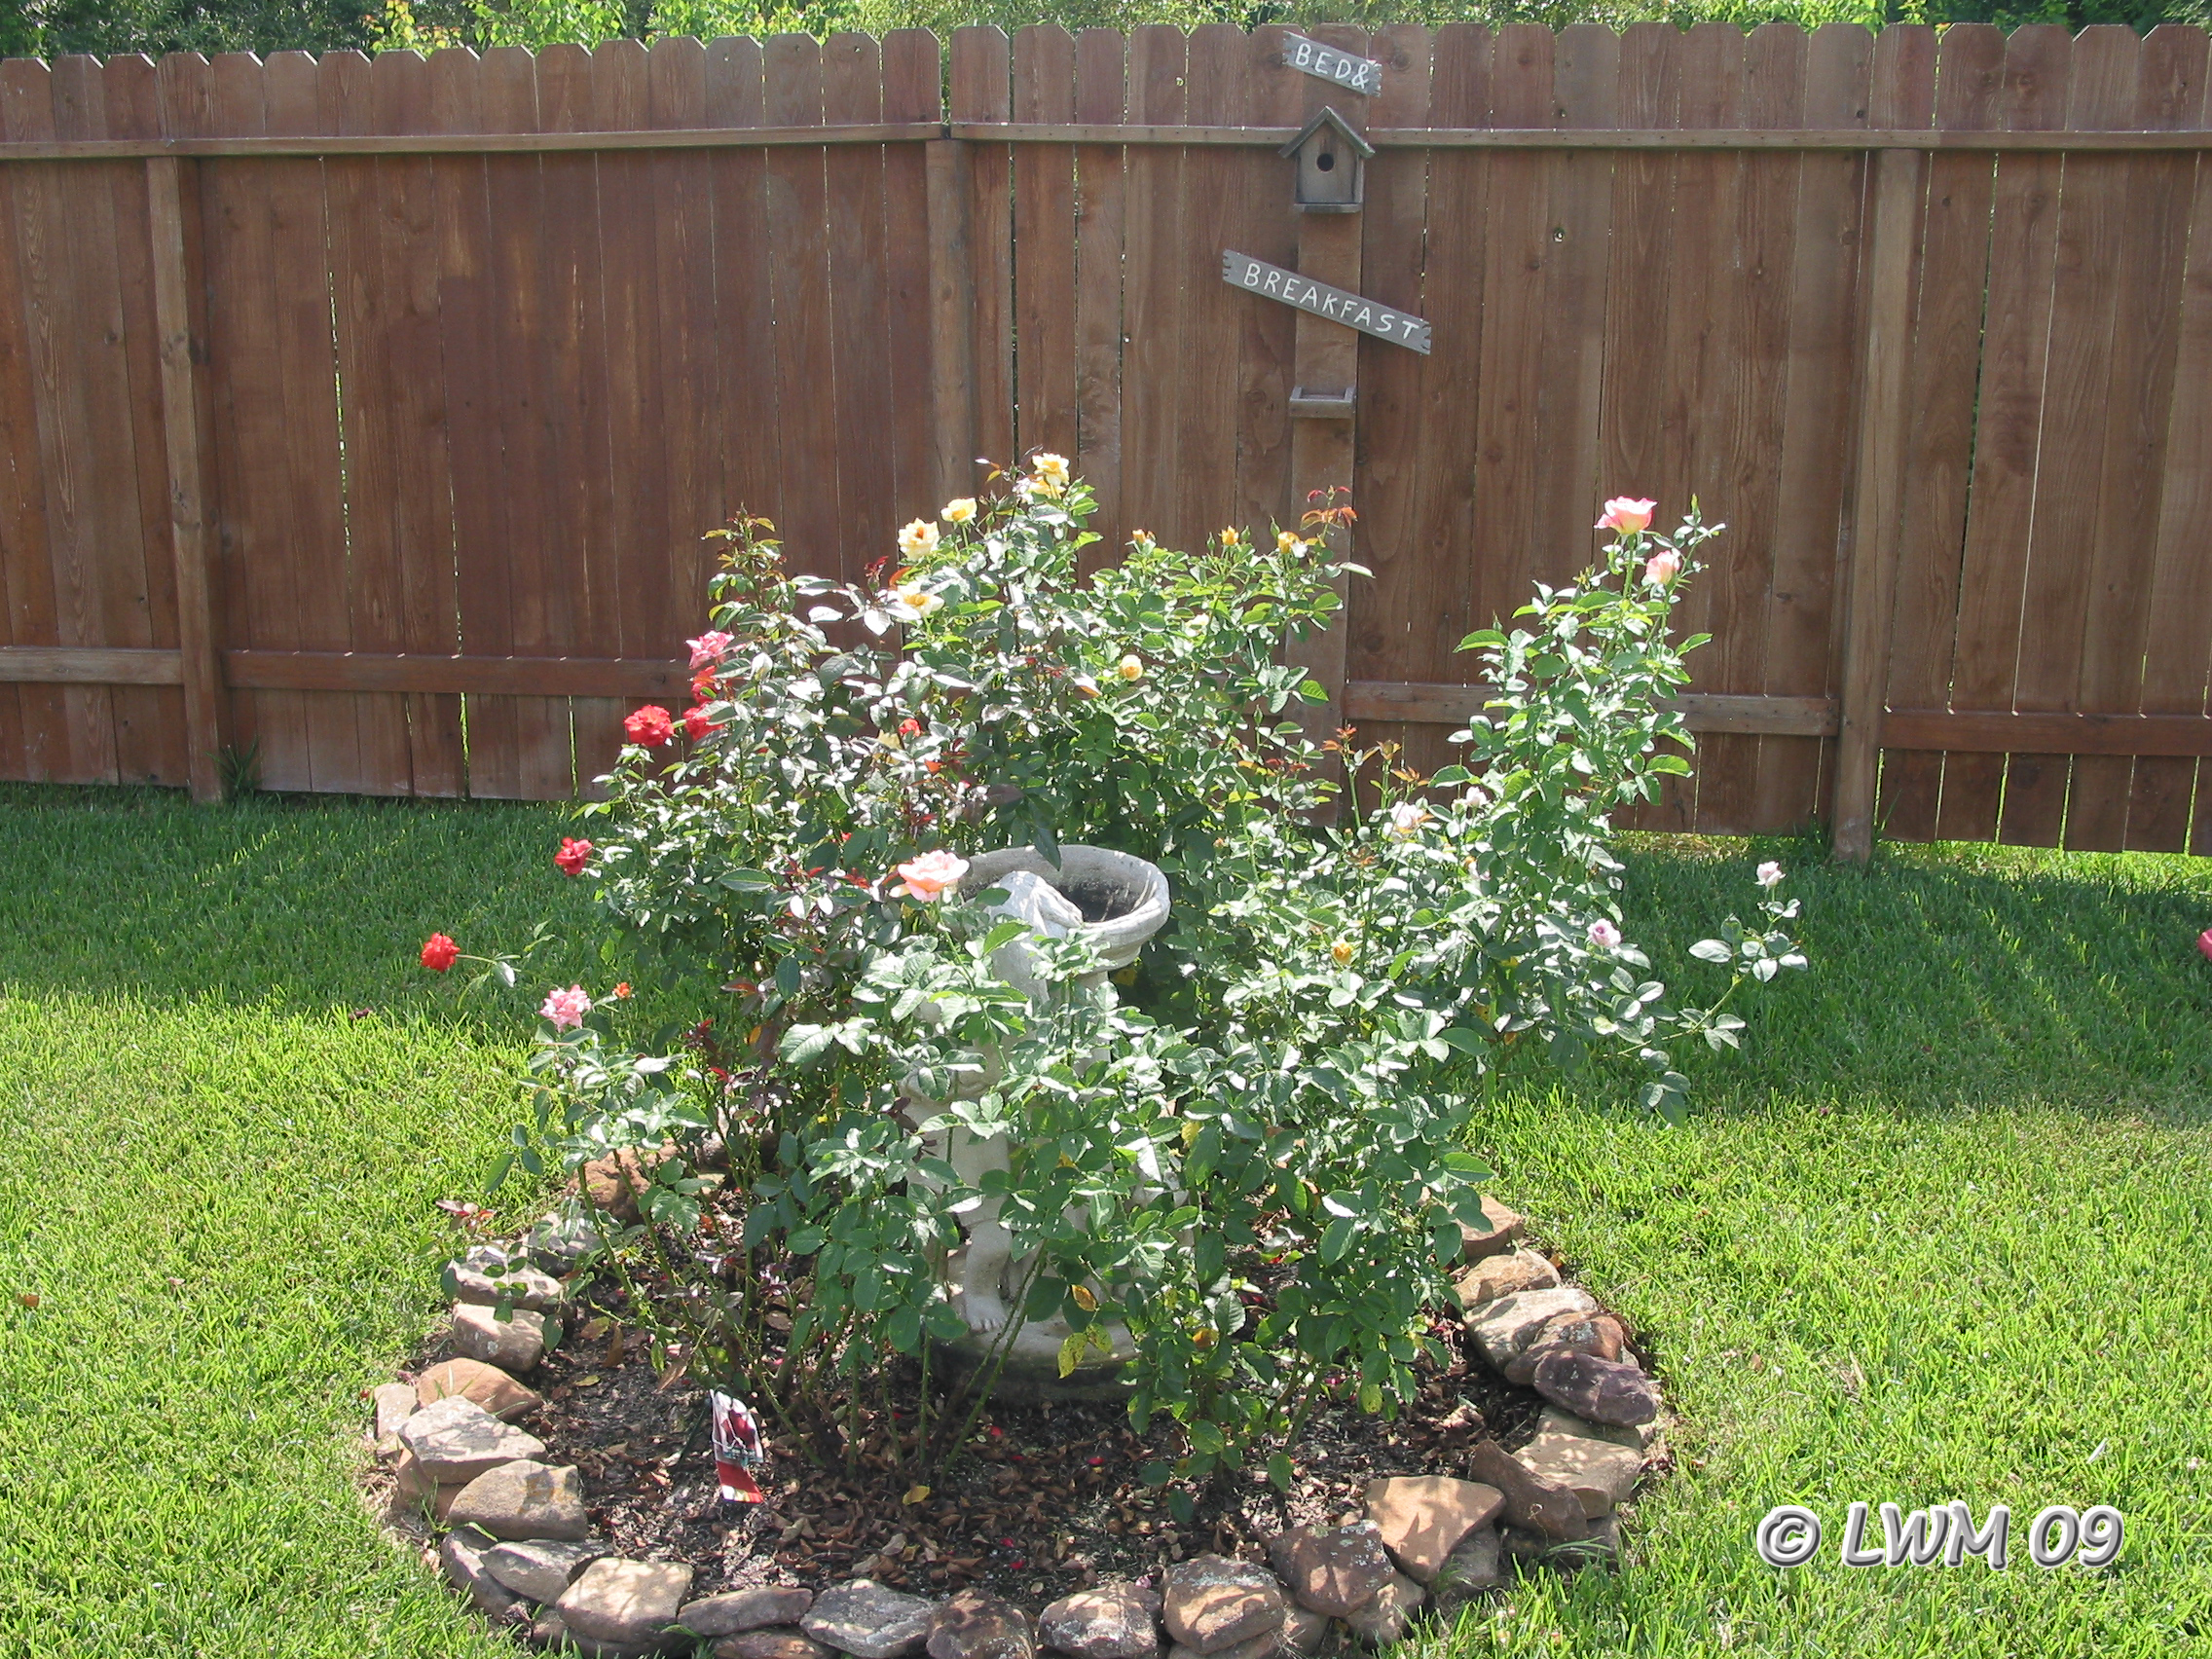 Backyard rose garden - Original Rose Garden